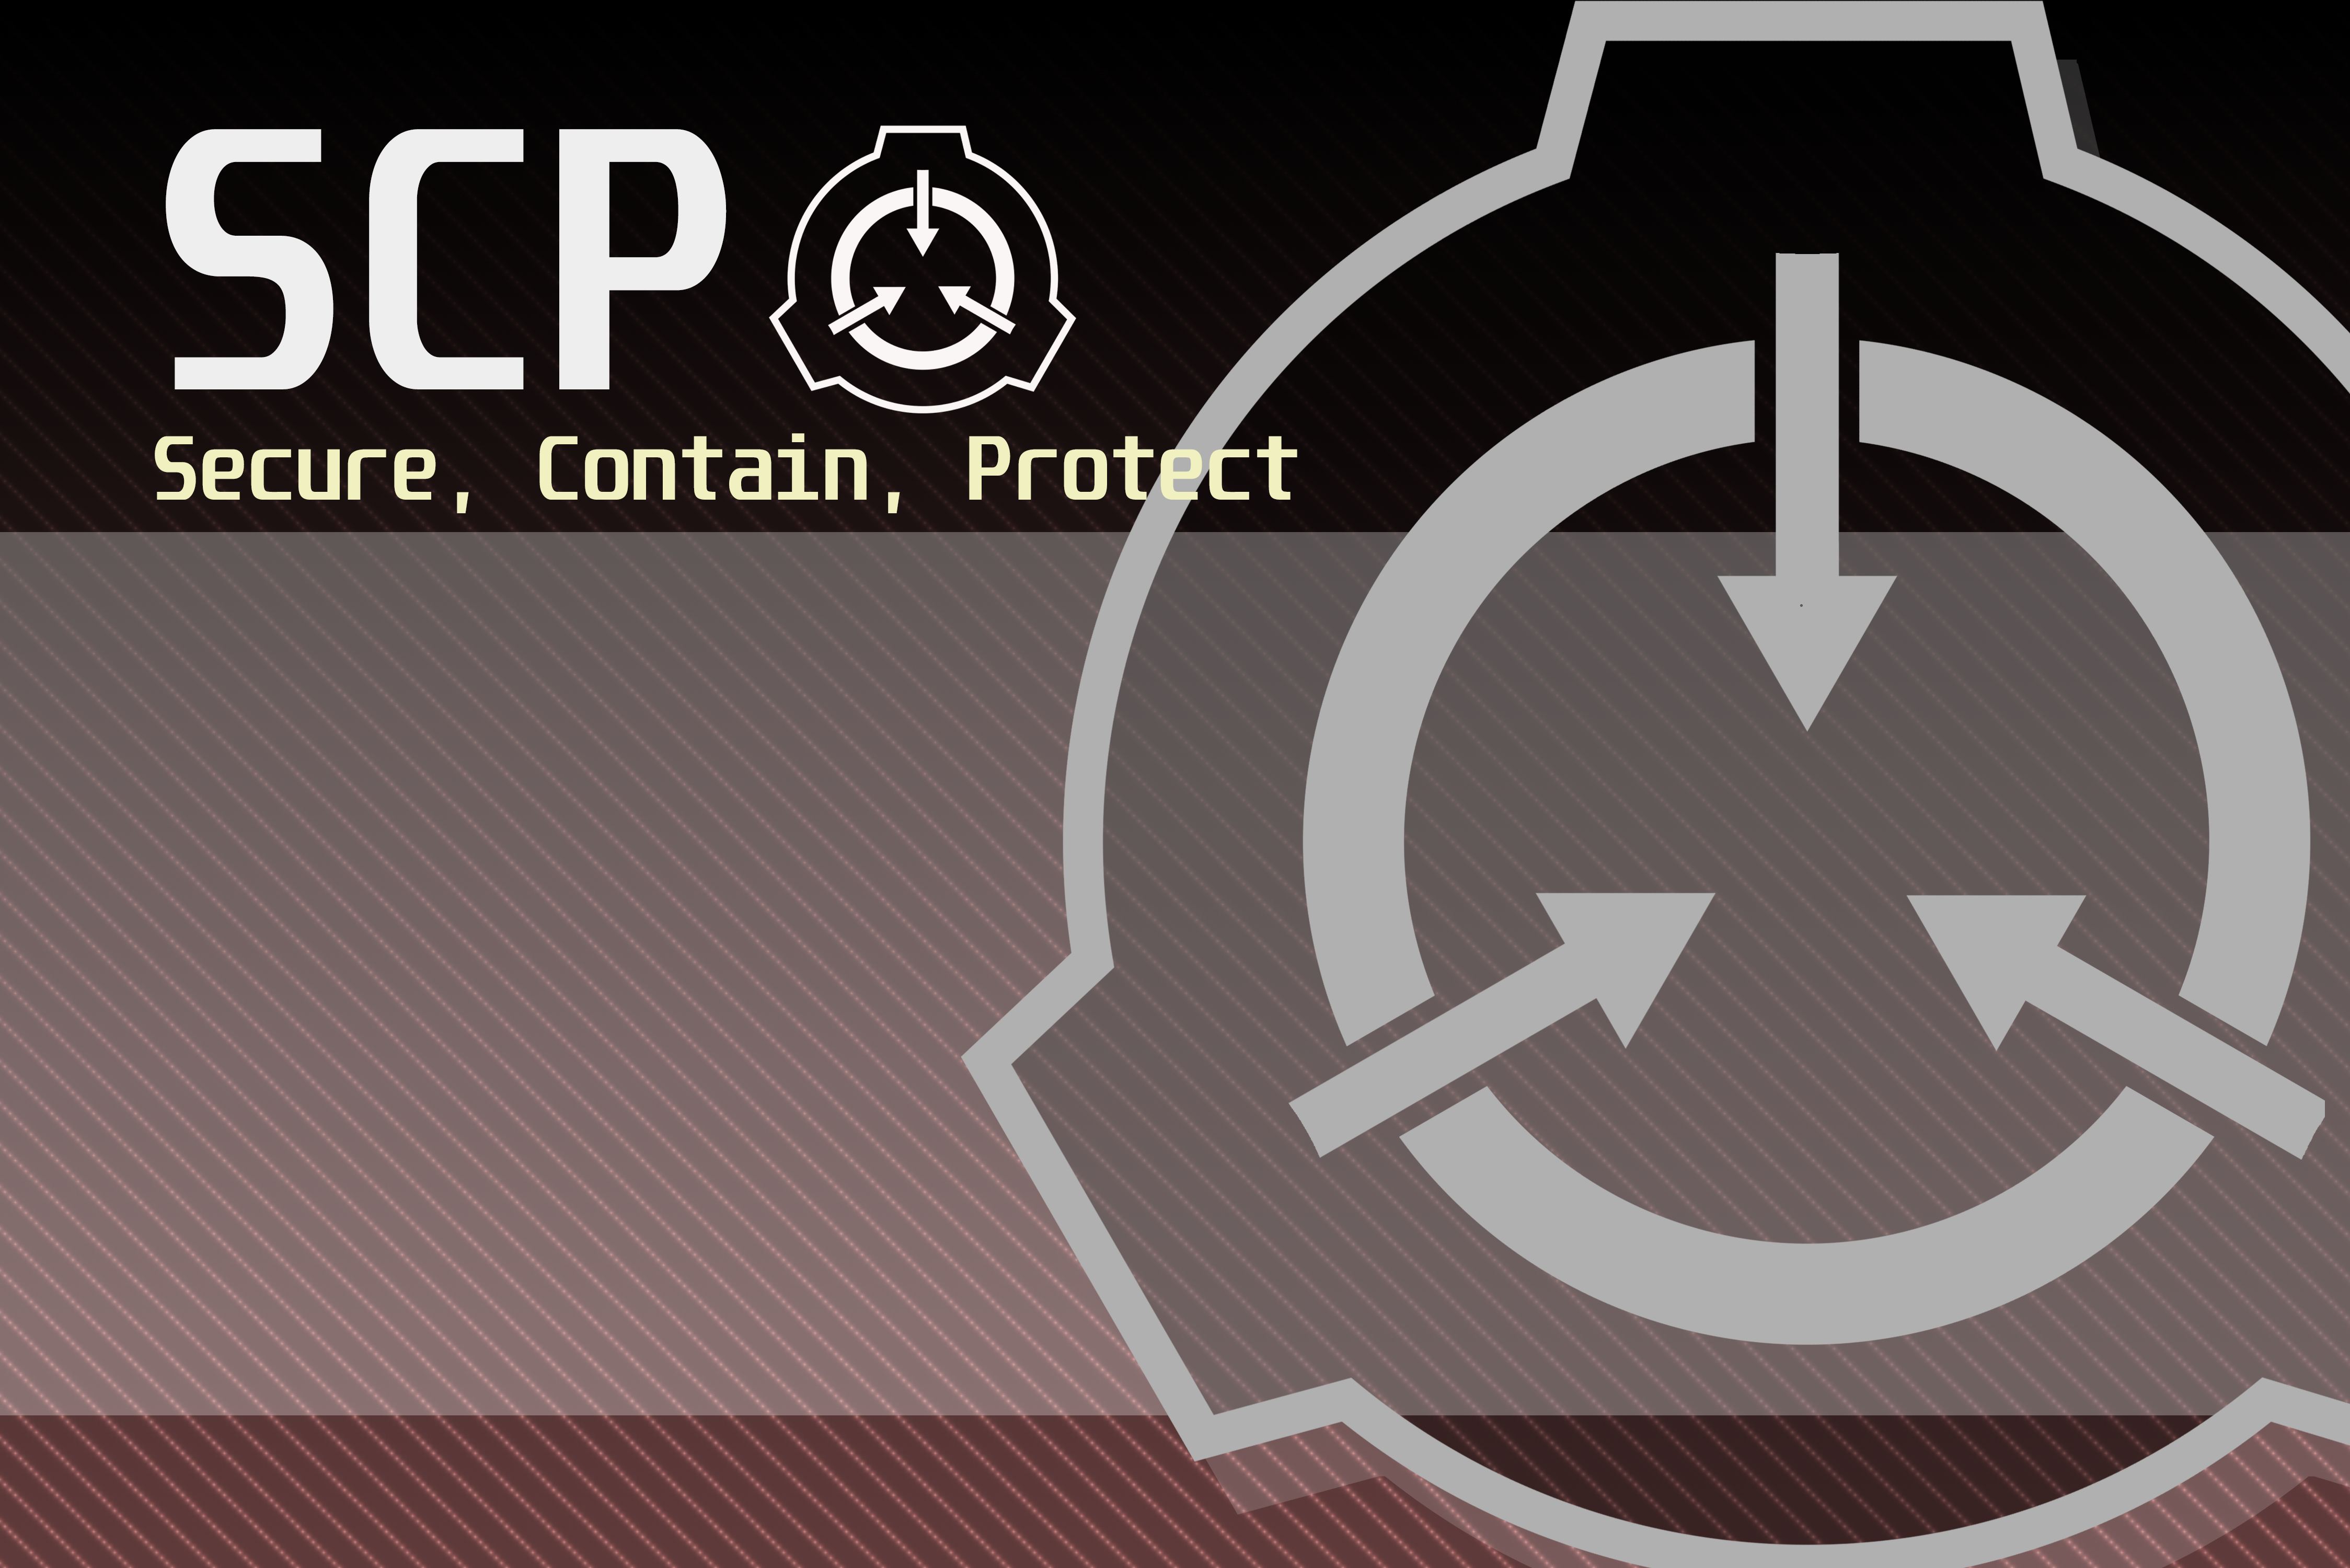 SCP-Ccard-Wiki-02.png